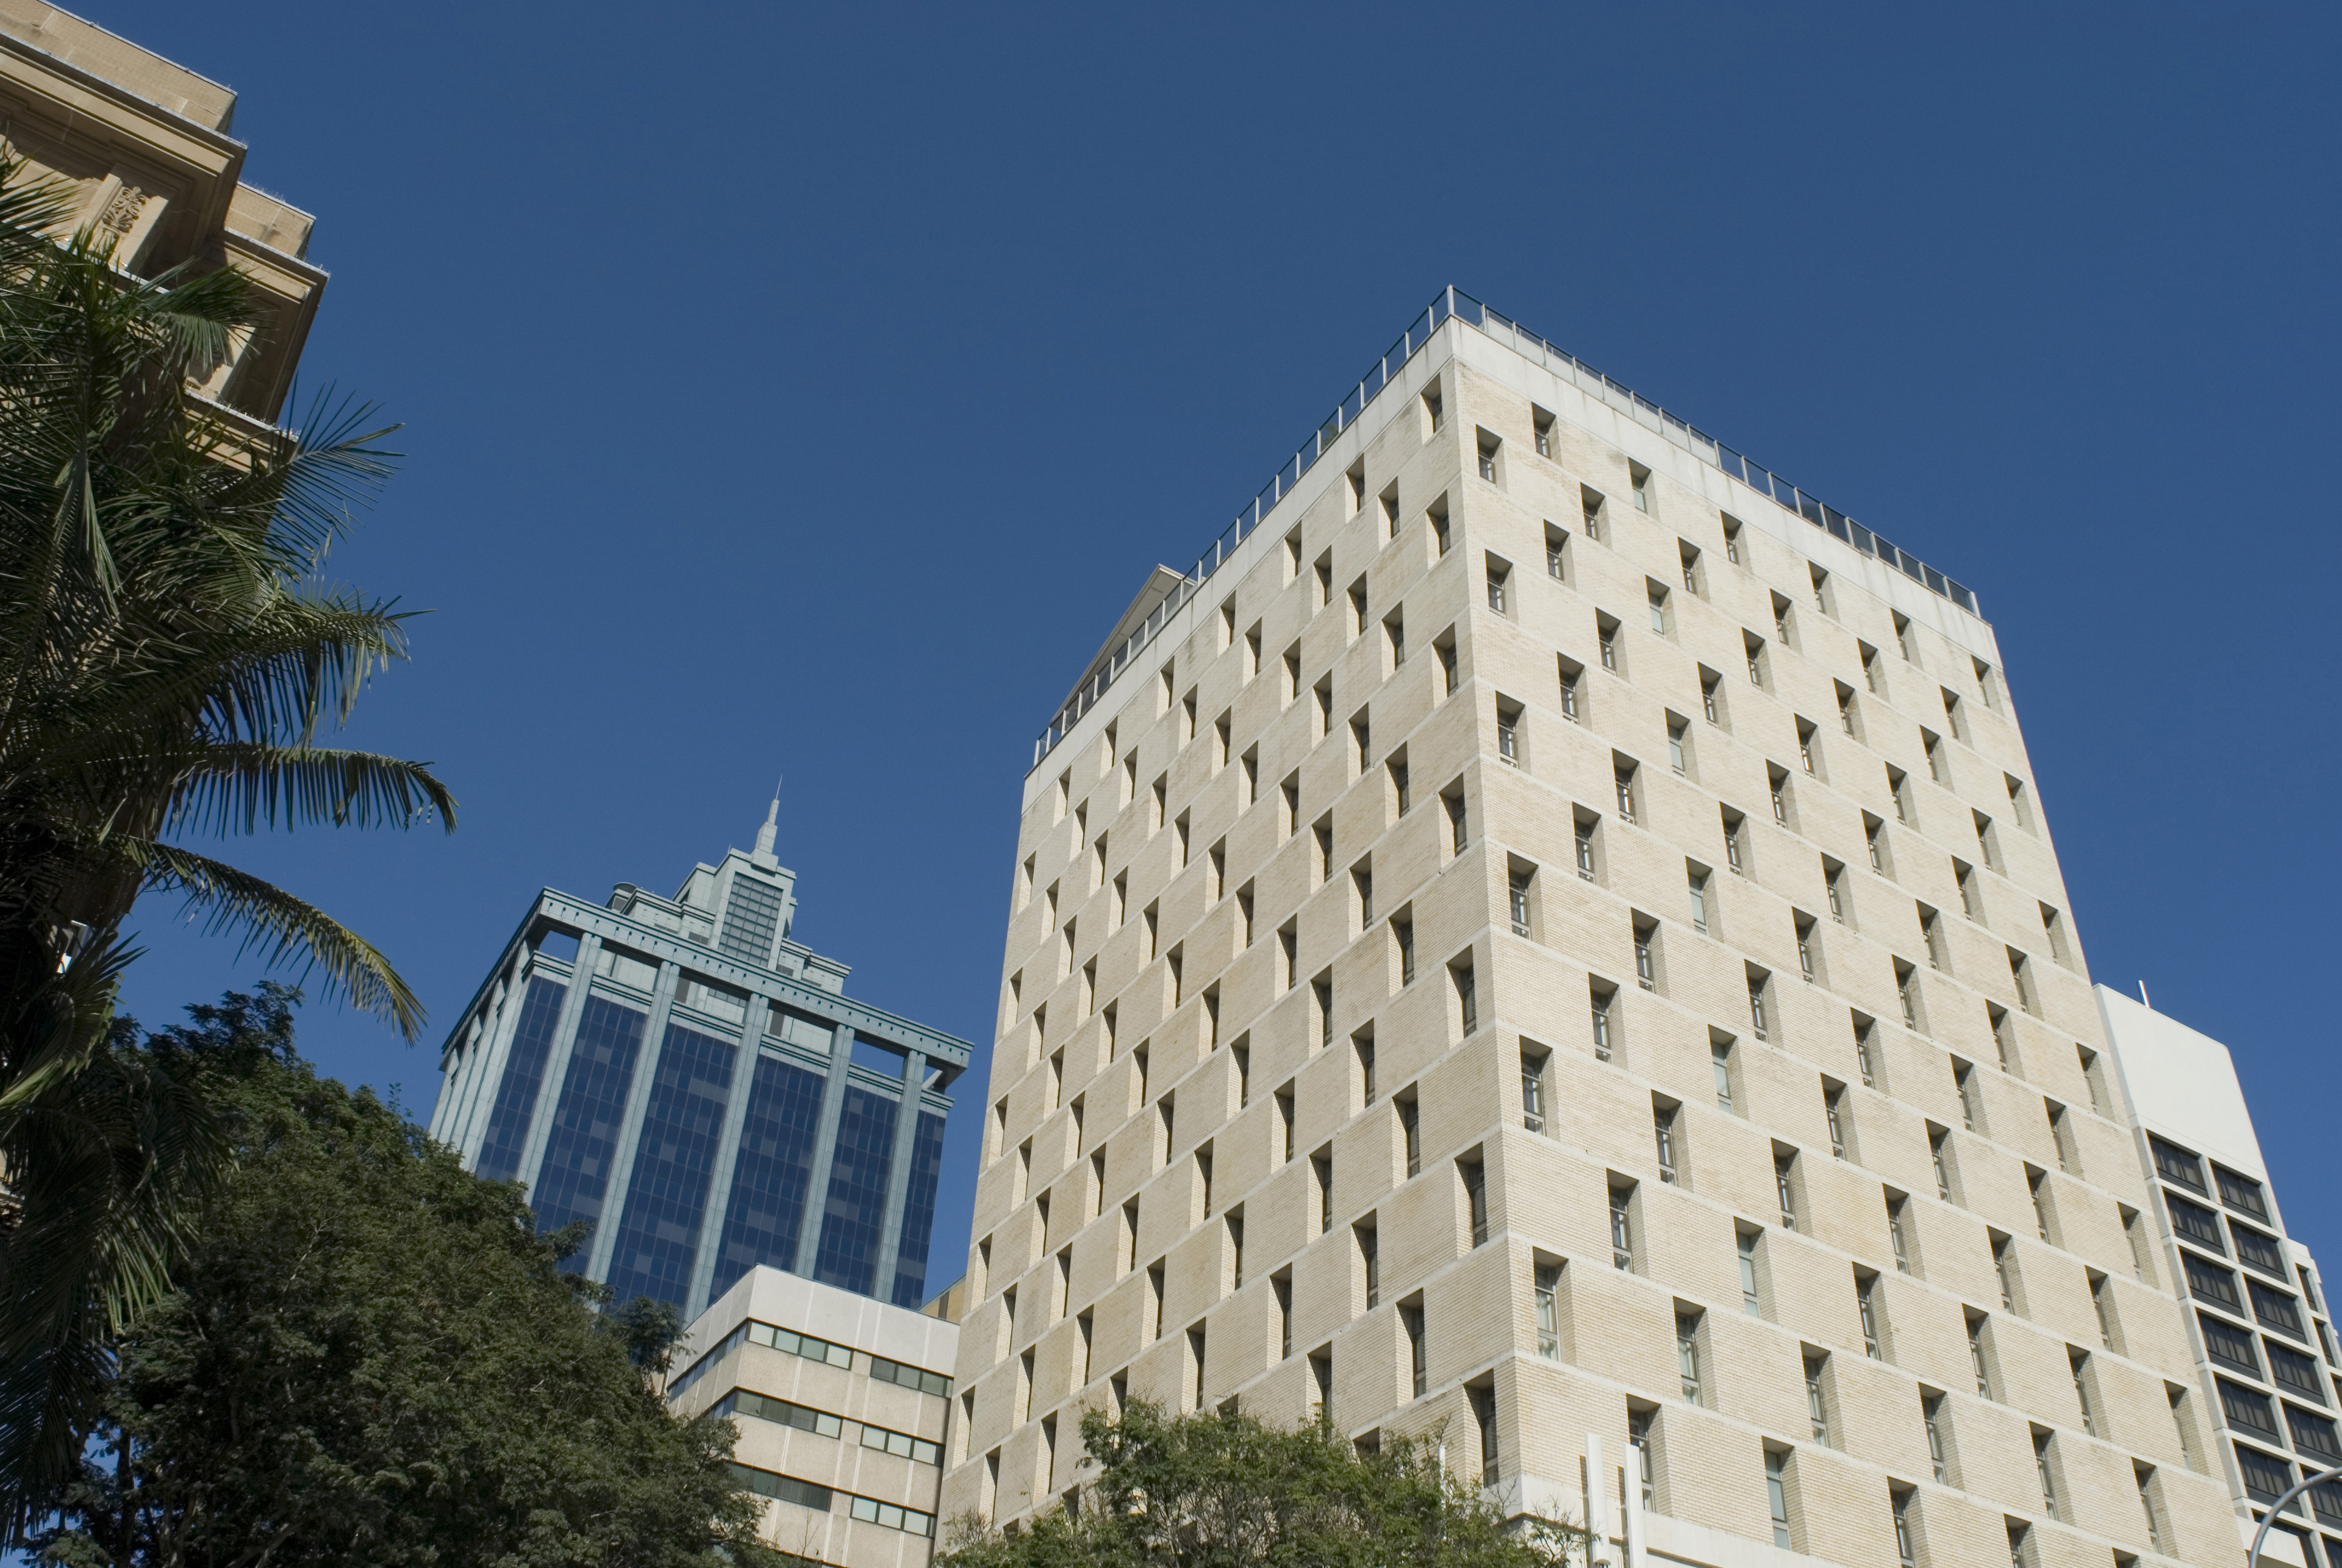 Exterior View of Architectural High City Offices on Blue Gray Sky Background